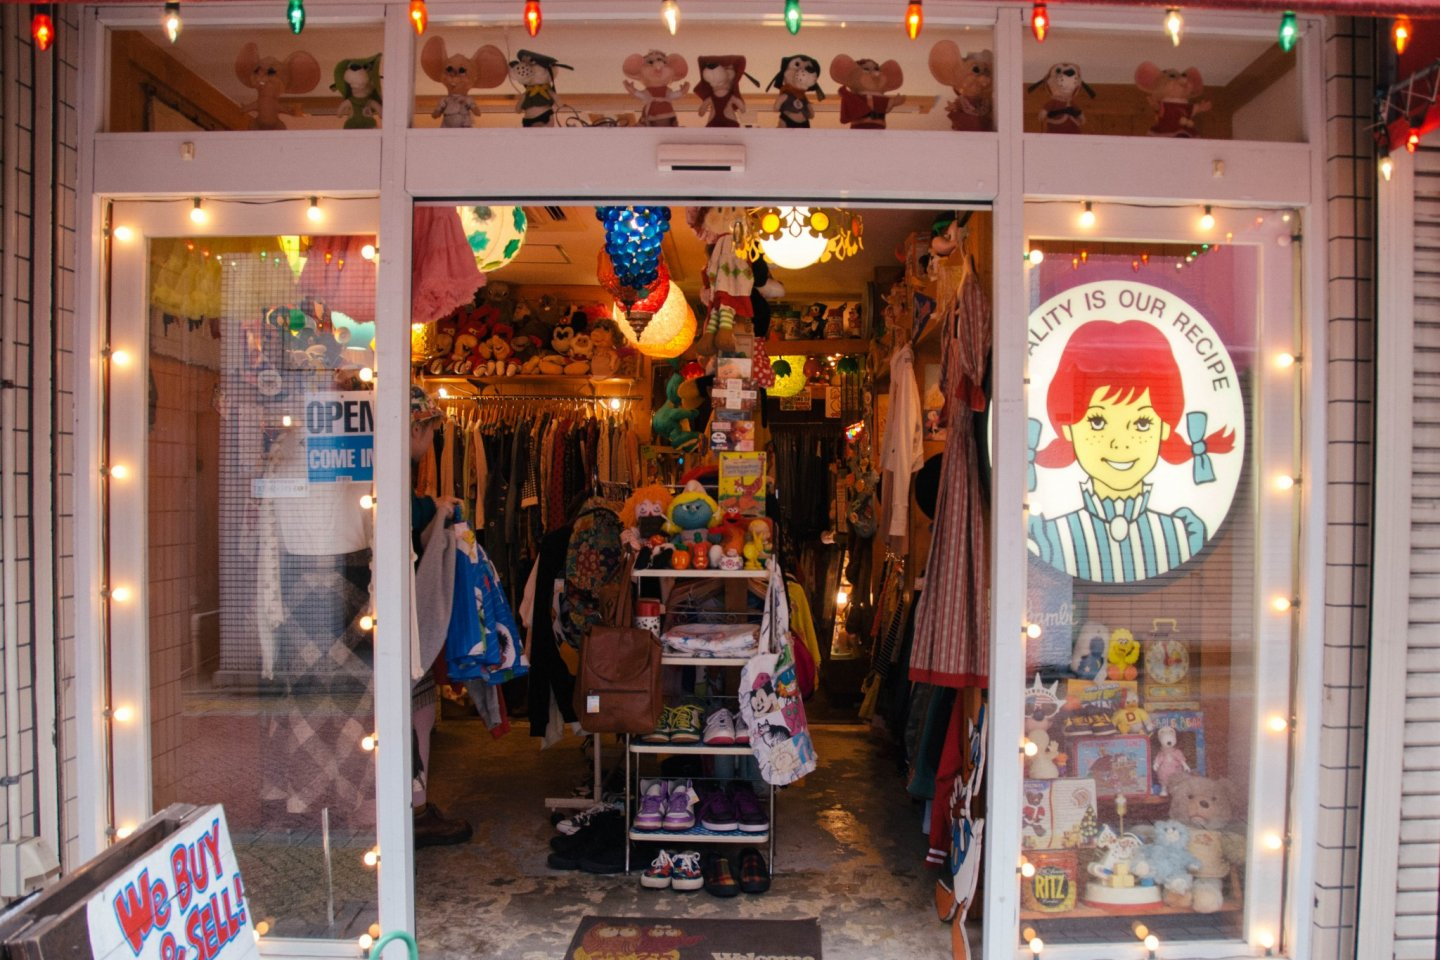 Cool shop selling vintage clothes and memorabilia.